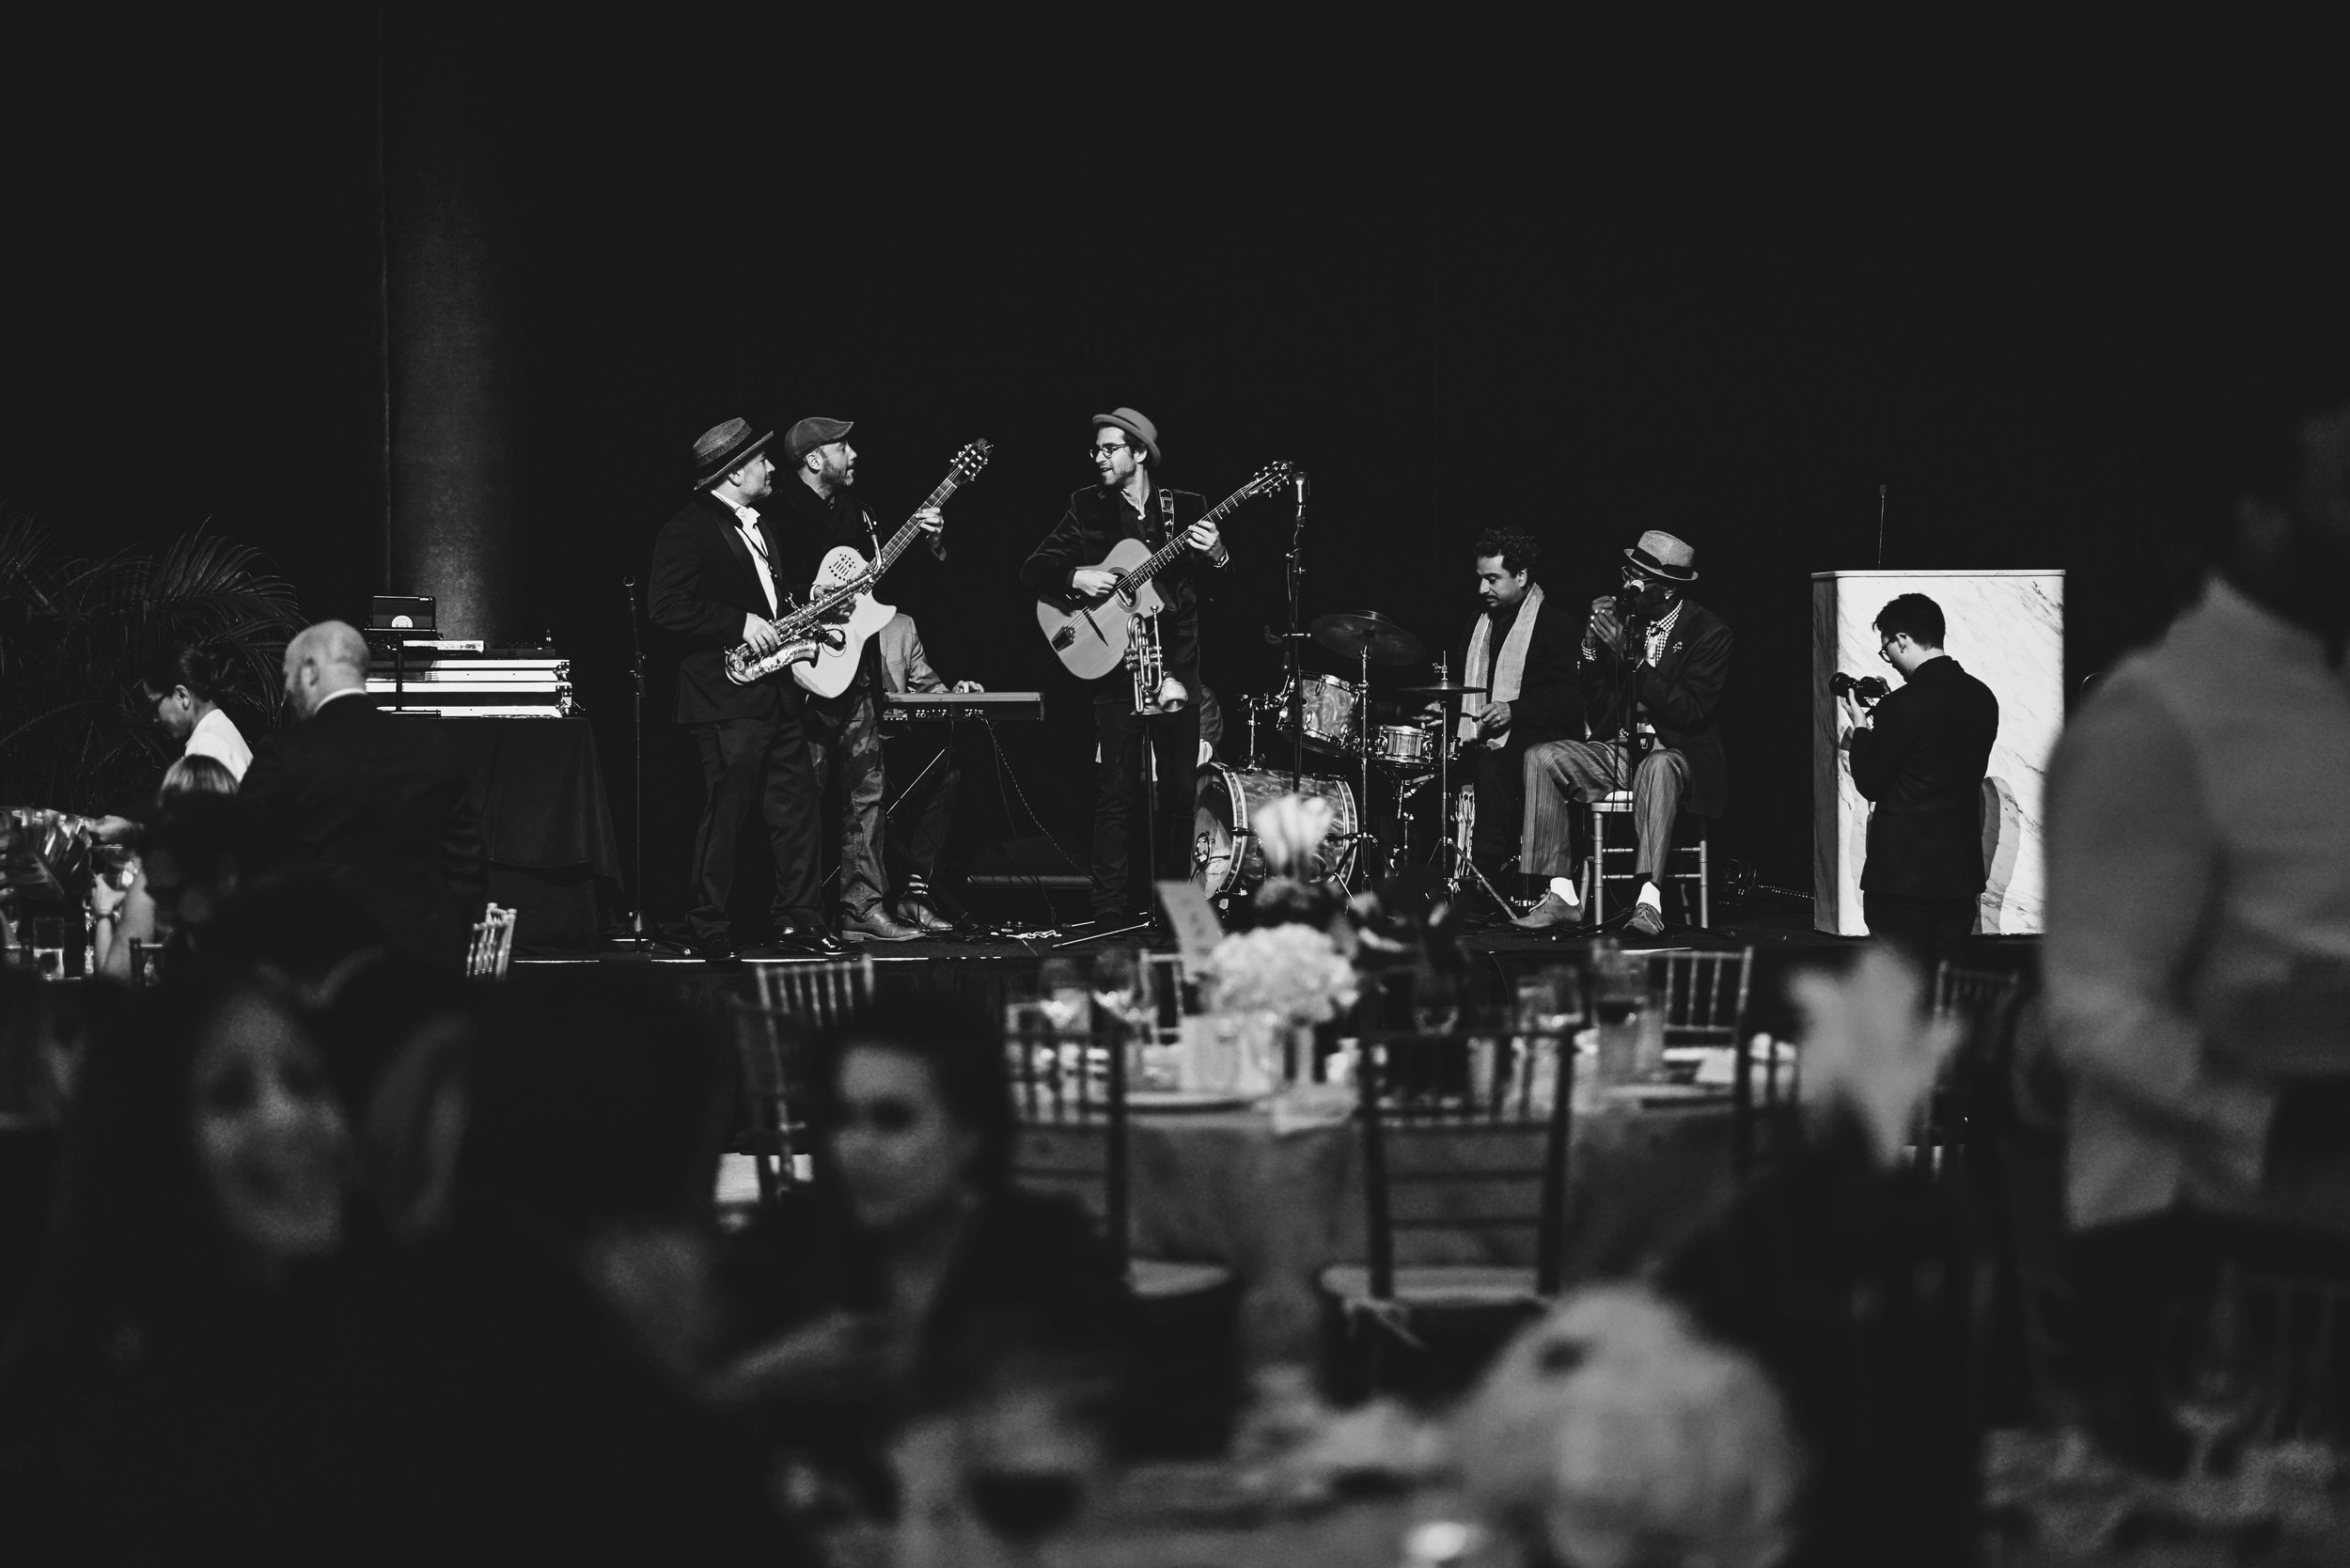 From jazz dinner concerts to corporate events, the french collective brings the perfect combination of sound & taste. -